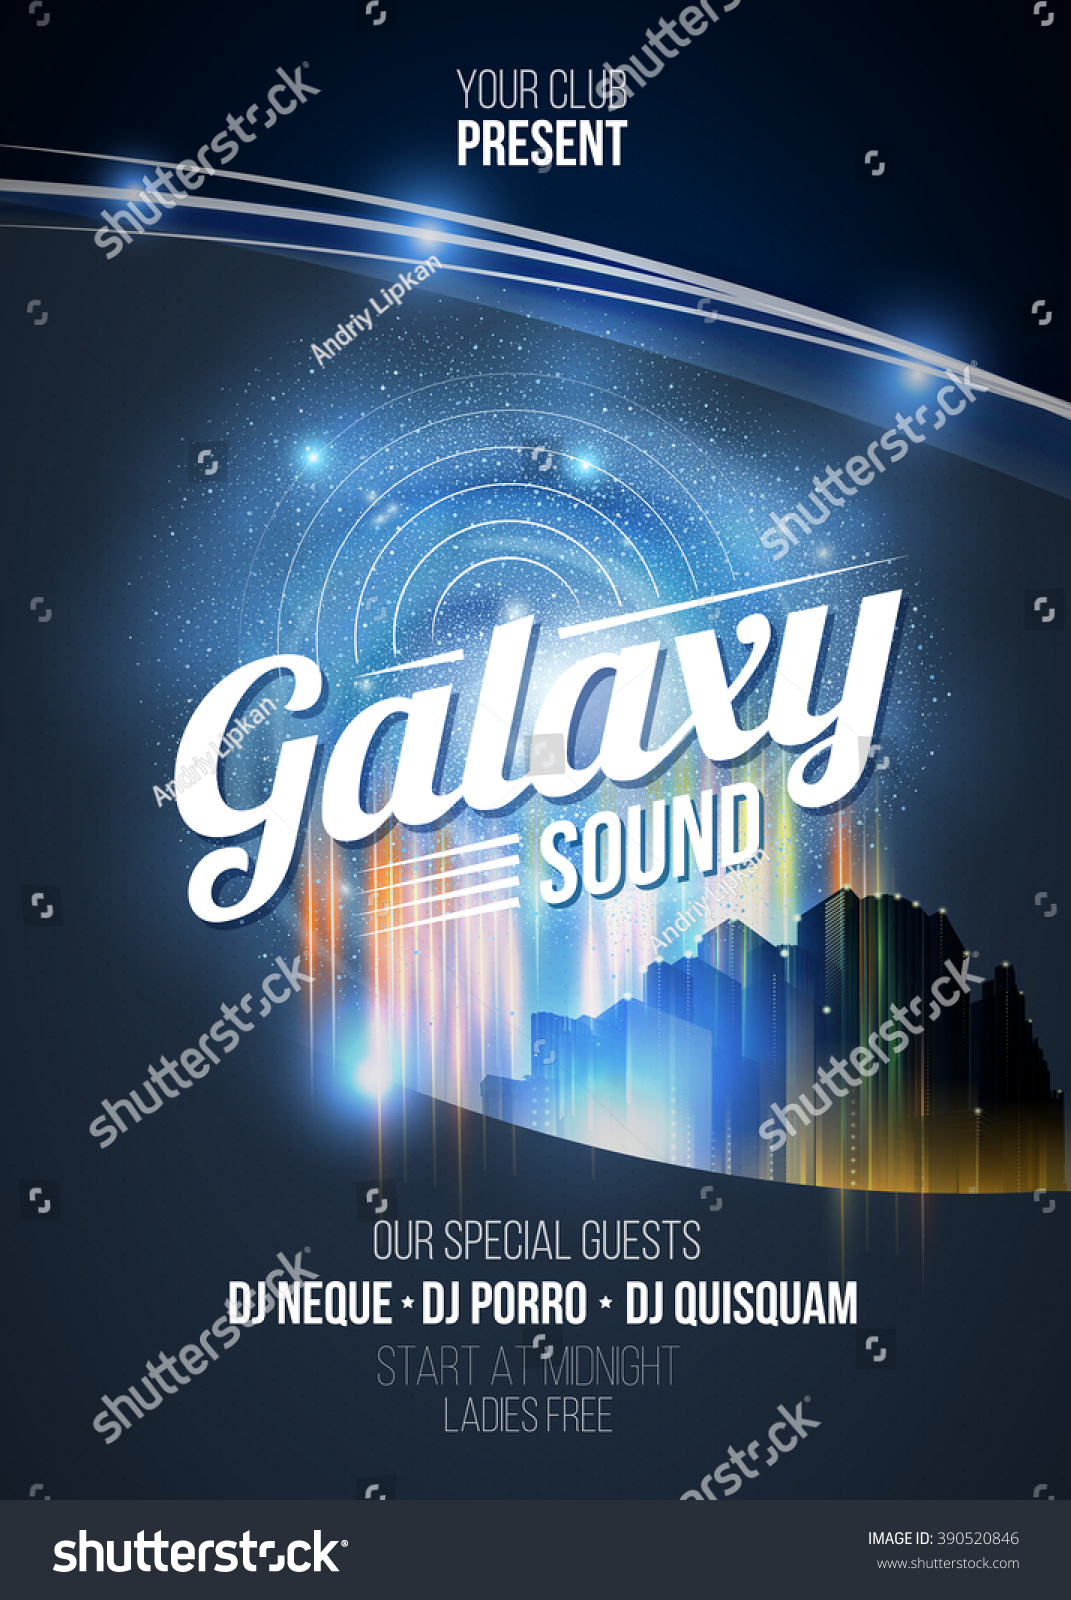 Party Poster Flyer Background Galaxy Sound Stock Vector 390520846 ...